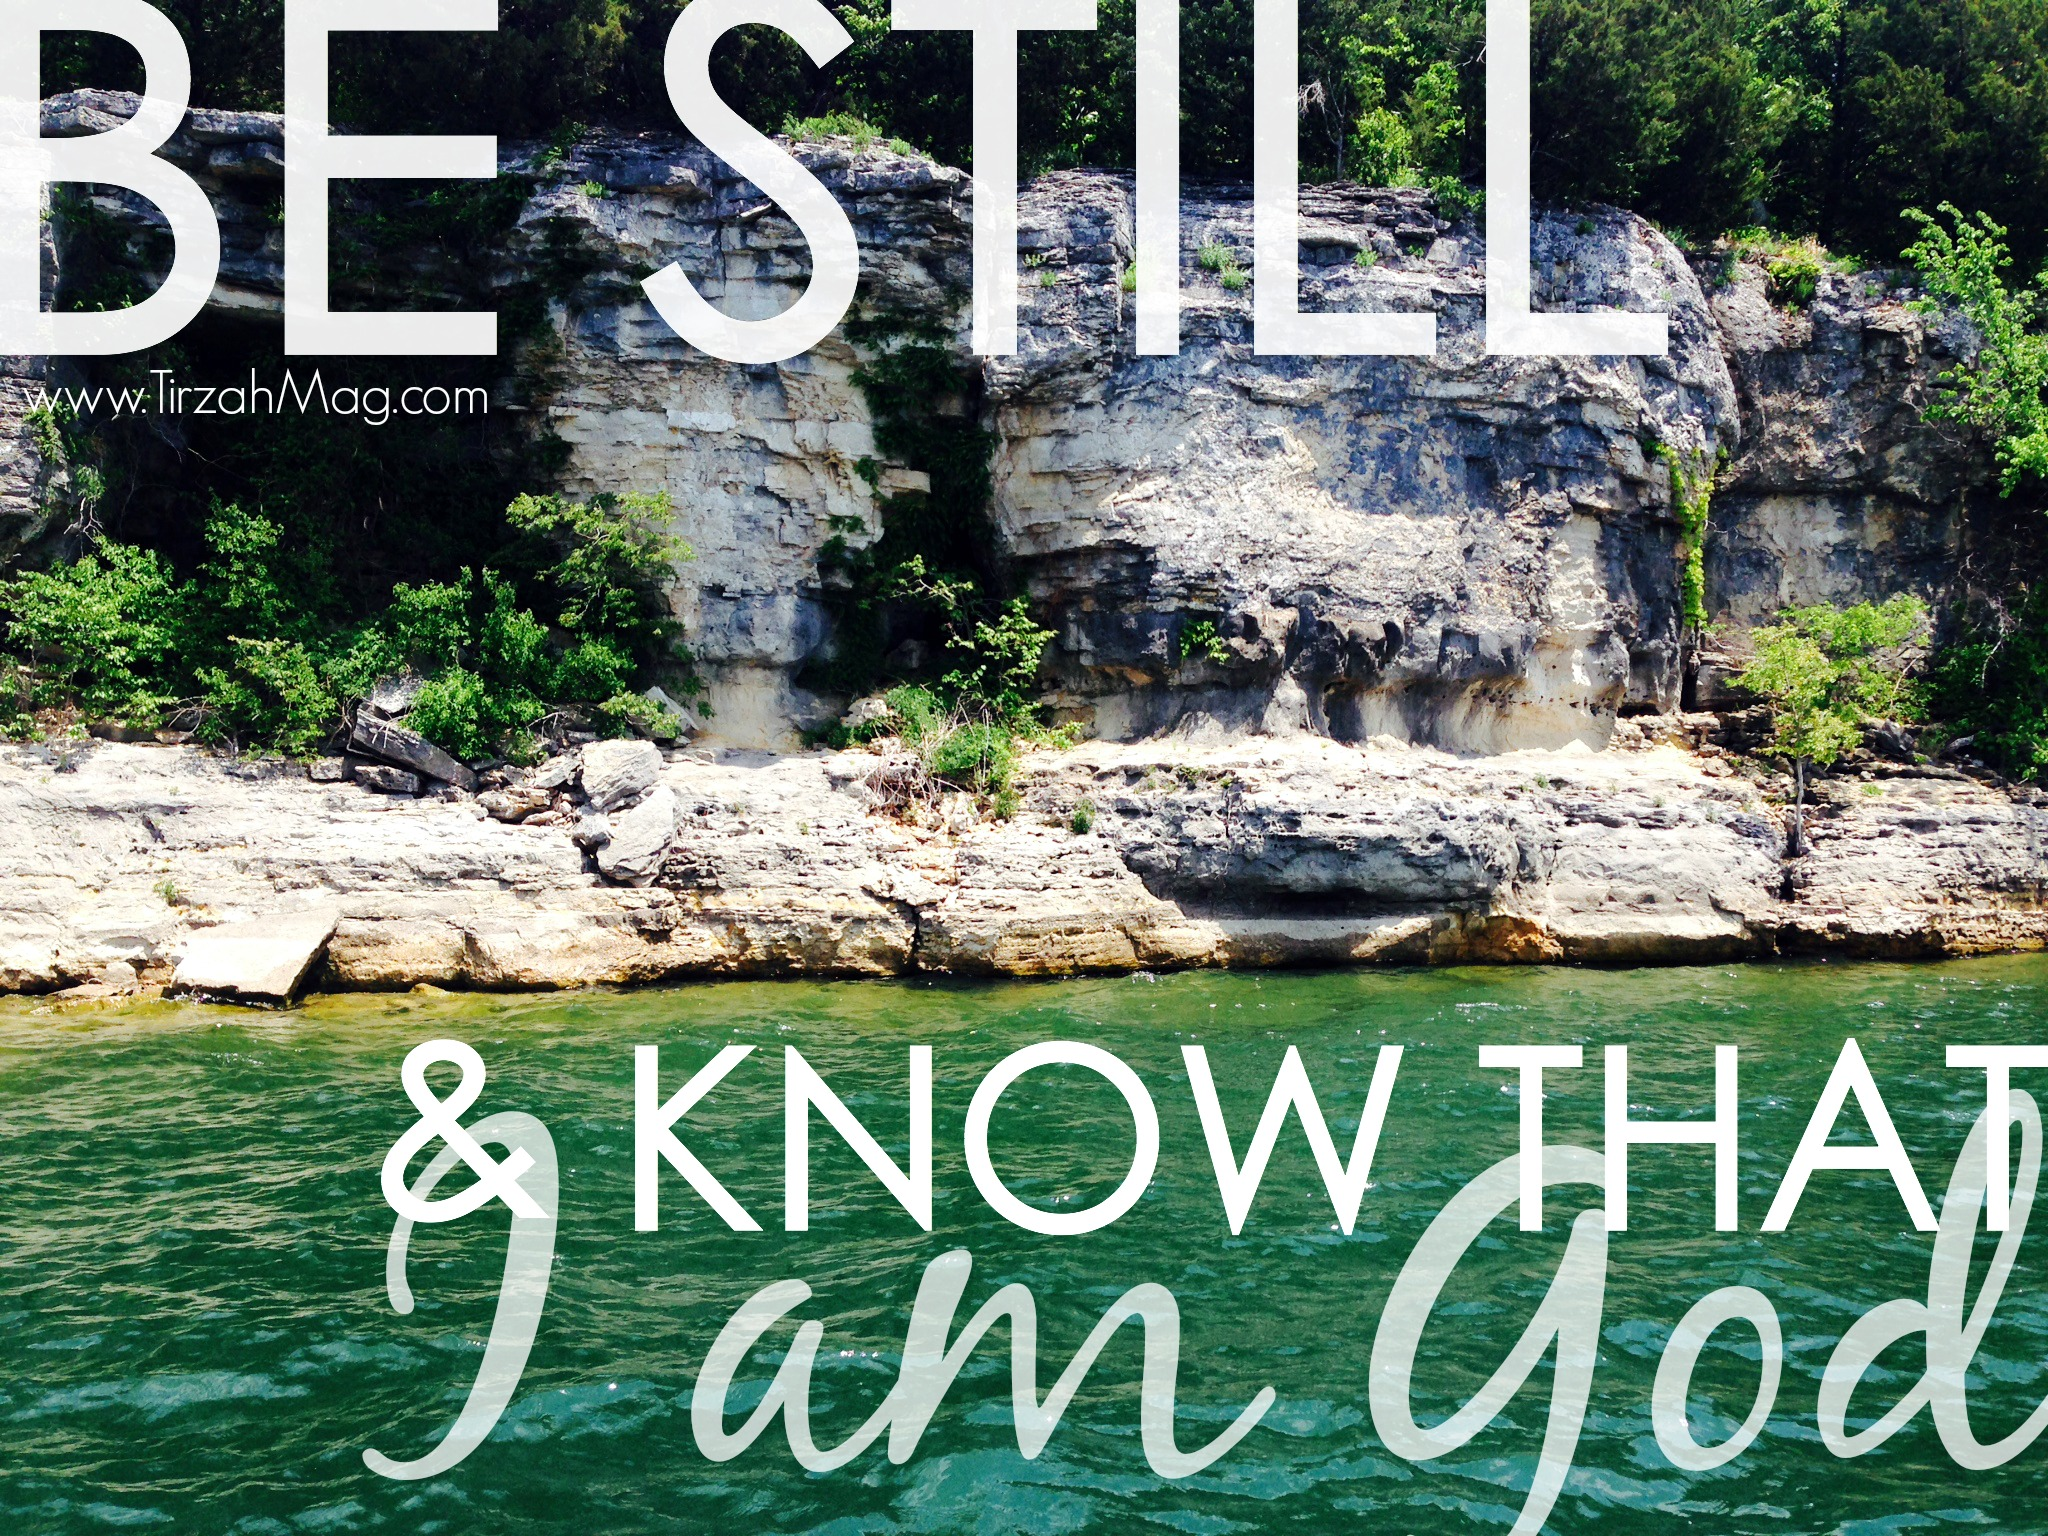 Be still and know that I am God - Tirzah Magazine